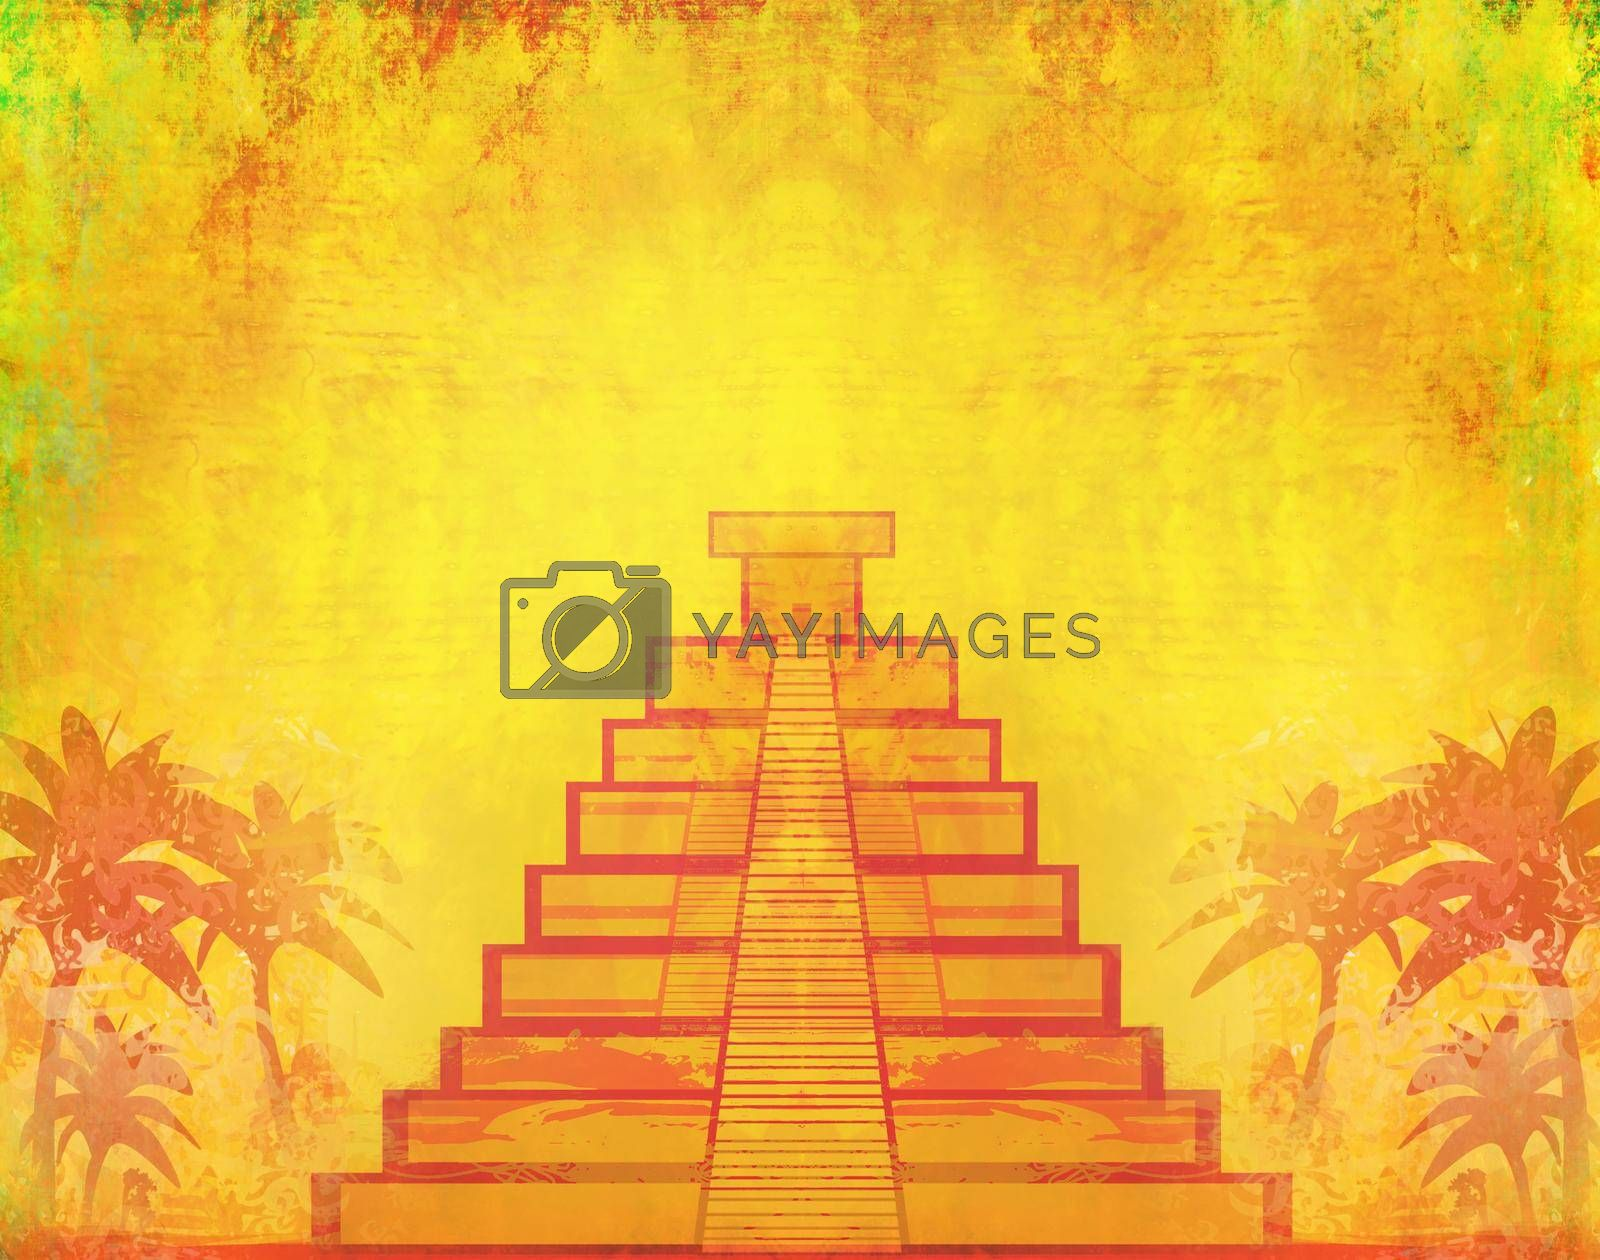 Royalty free image of Mayan Pyramid, Chichen-Itza, Mexico - grunge abstract background by JackyBrown